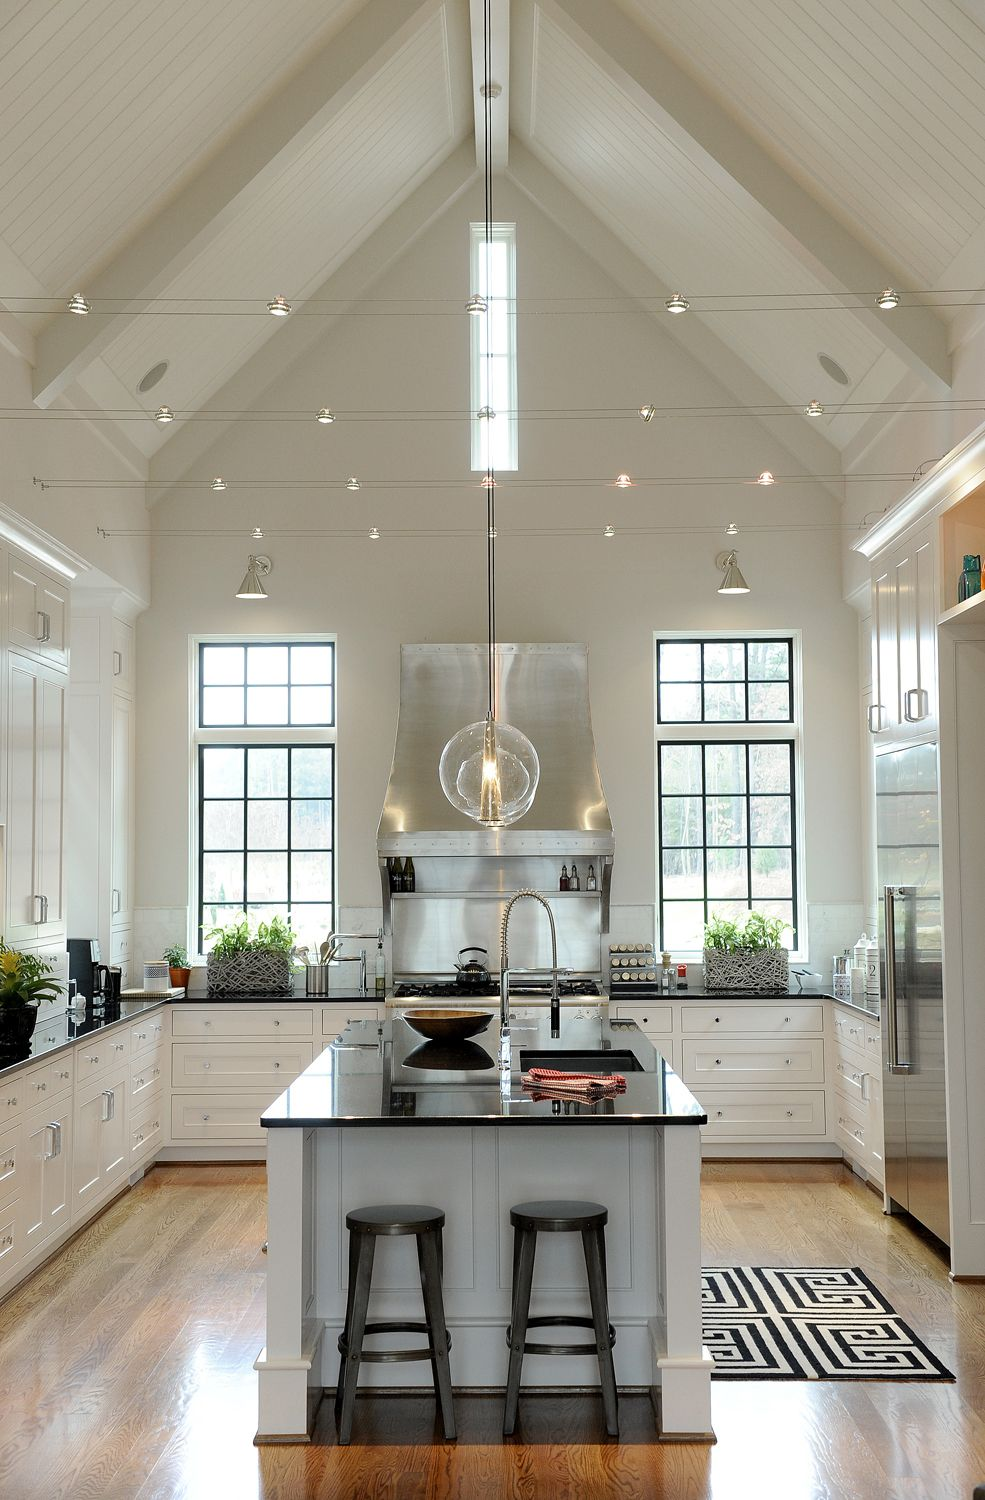 Best Kitchen Gallery: Vaulted Ceilings 101 History Pros Cons And Inspirational of Hood Kitchen Design Vaulting Ceiling on rachelxblog.com